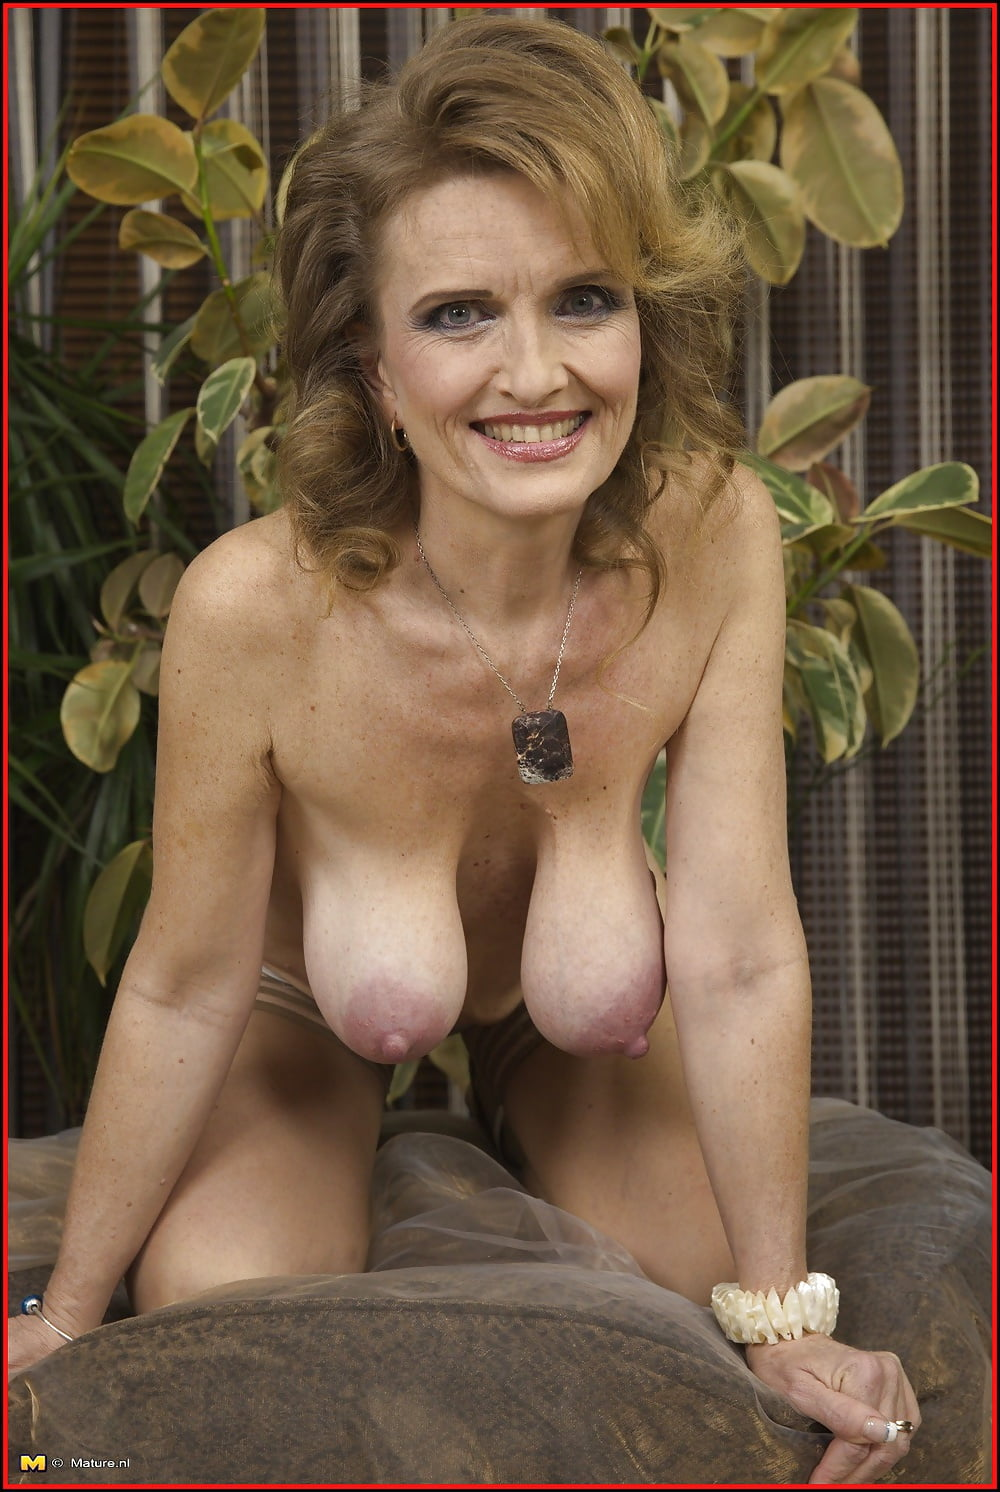 Fantastic mature milf with big saggy tits likes creampie